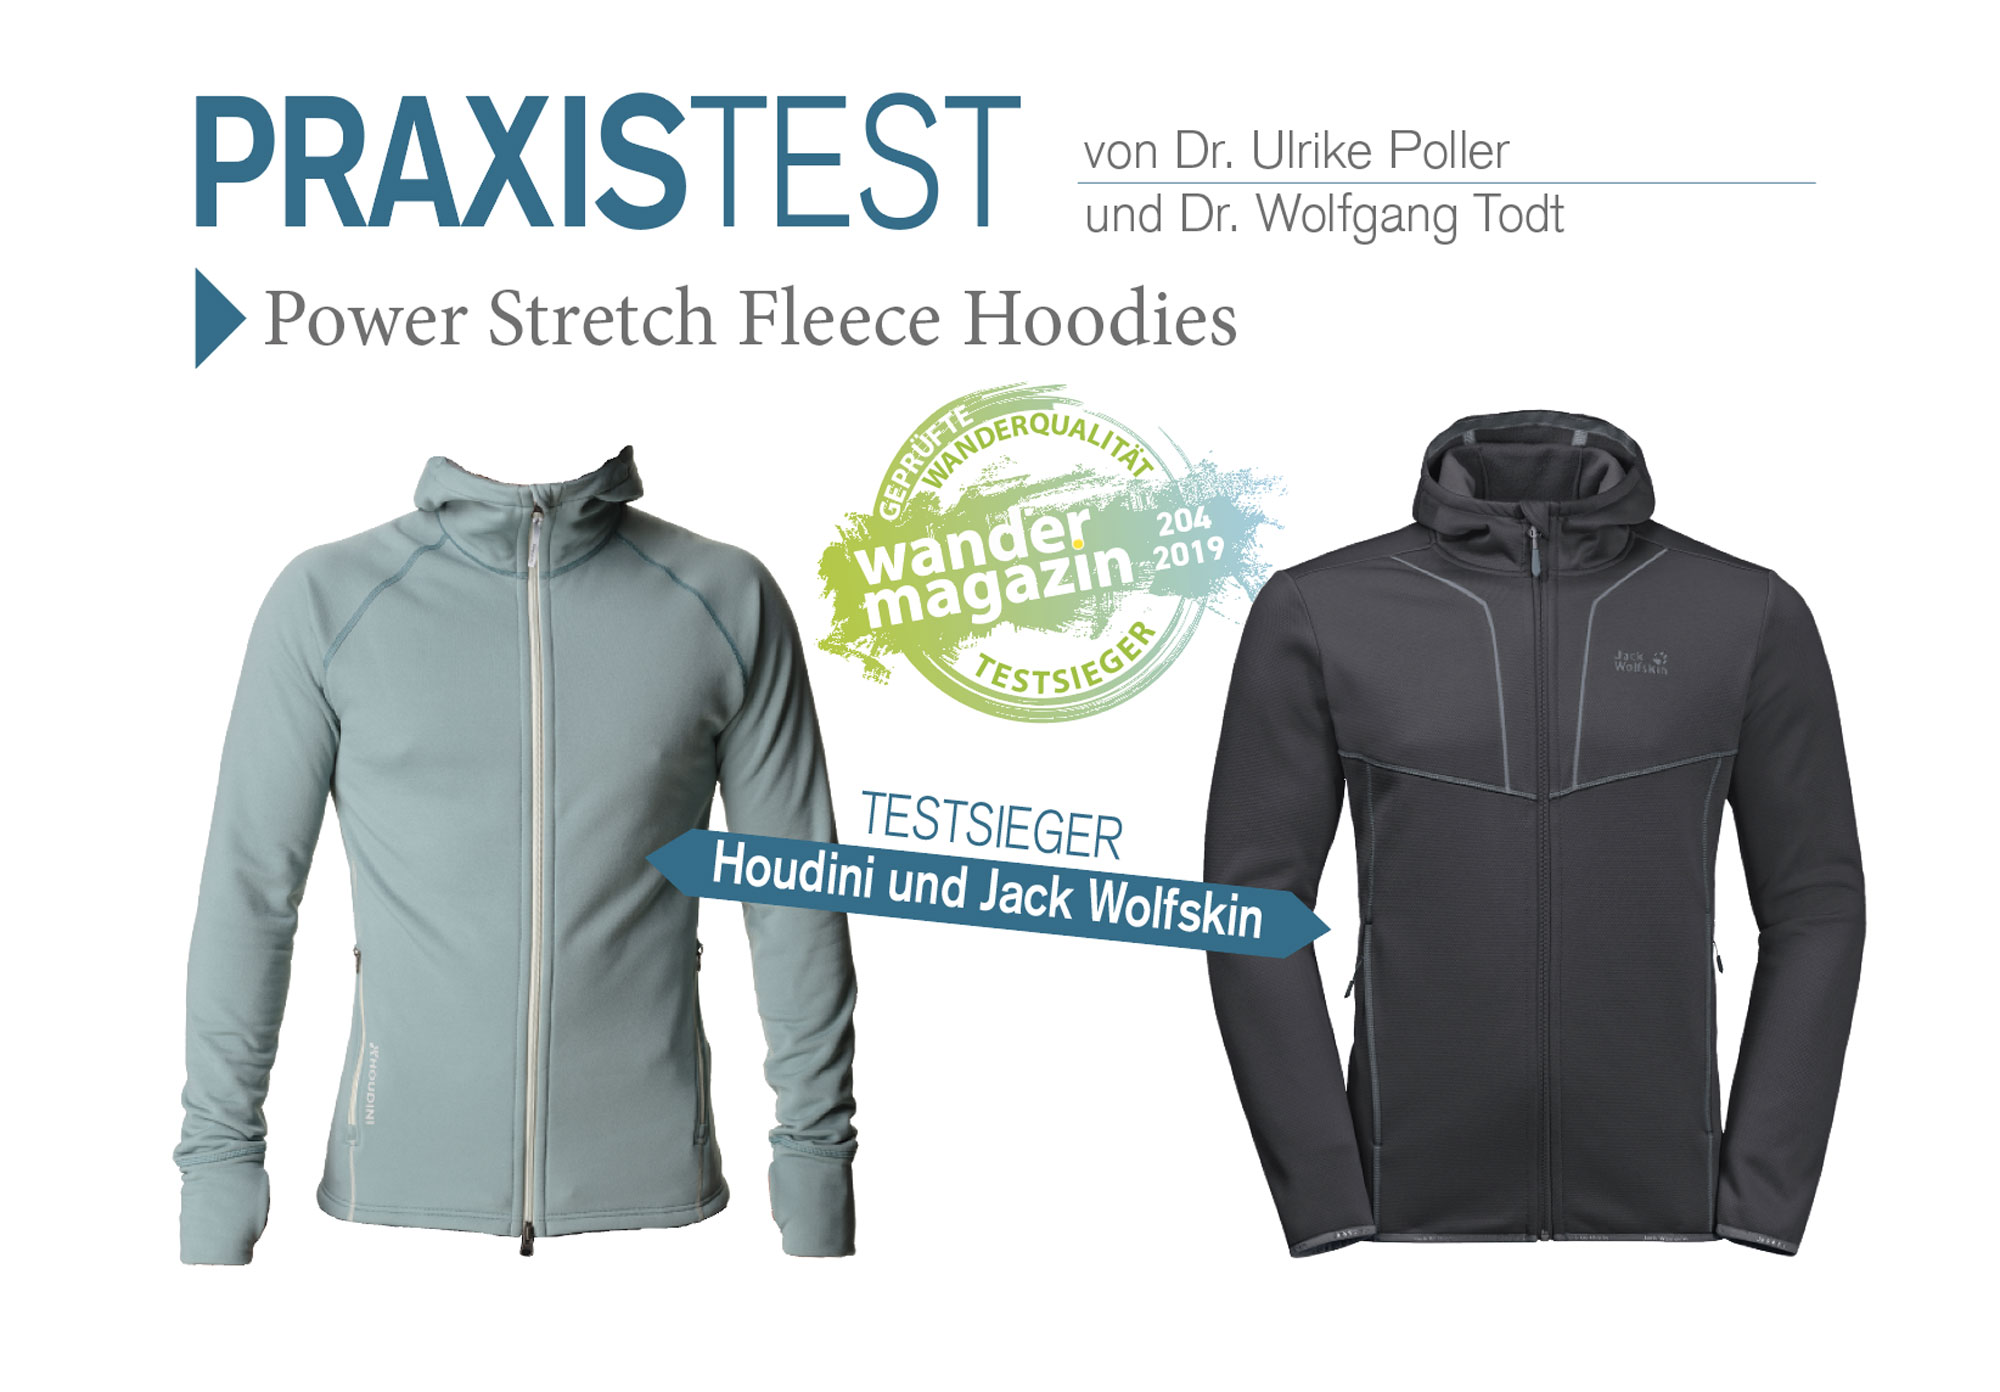 Praxistest Power Stretch Fleece Hoodies